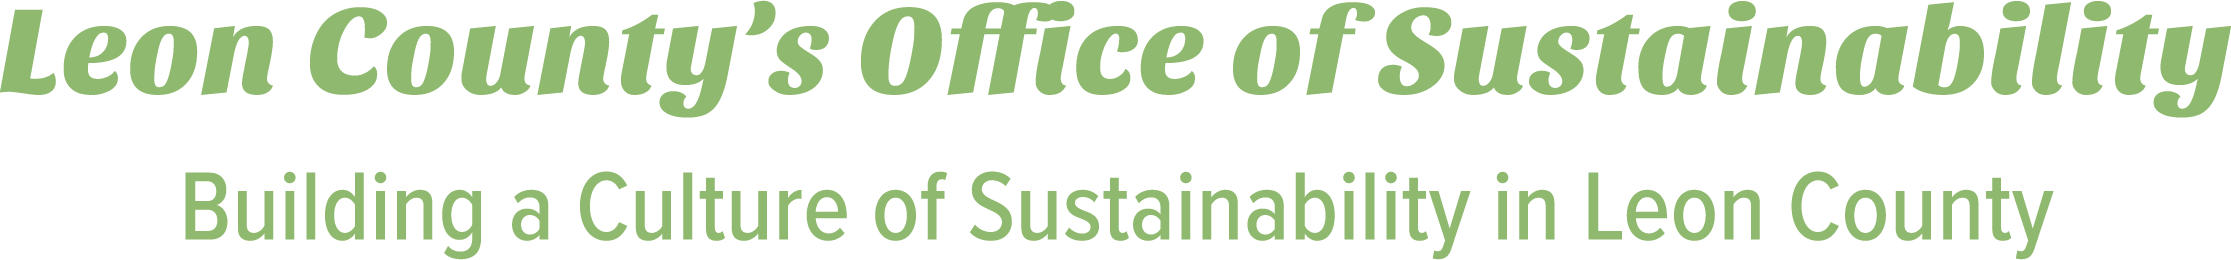 Office of Sustainability2